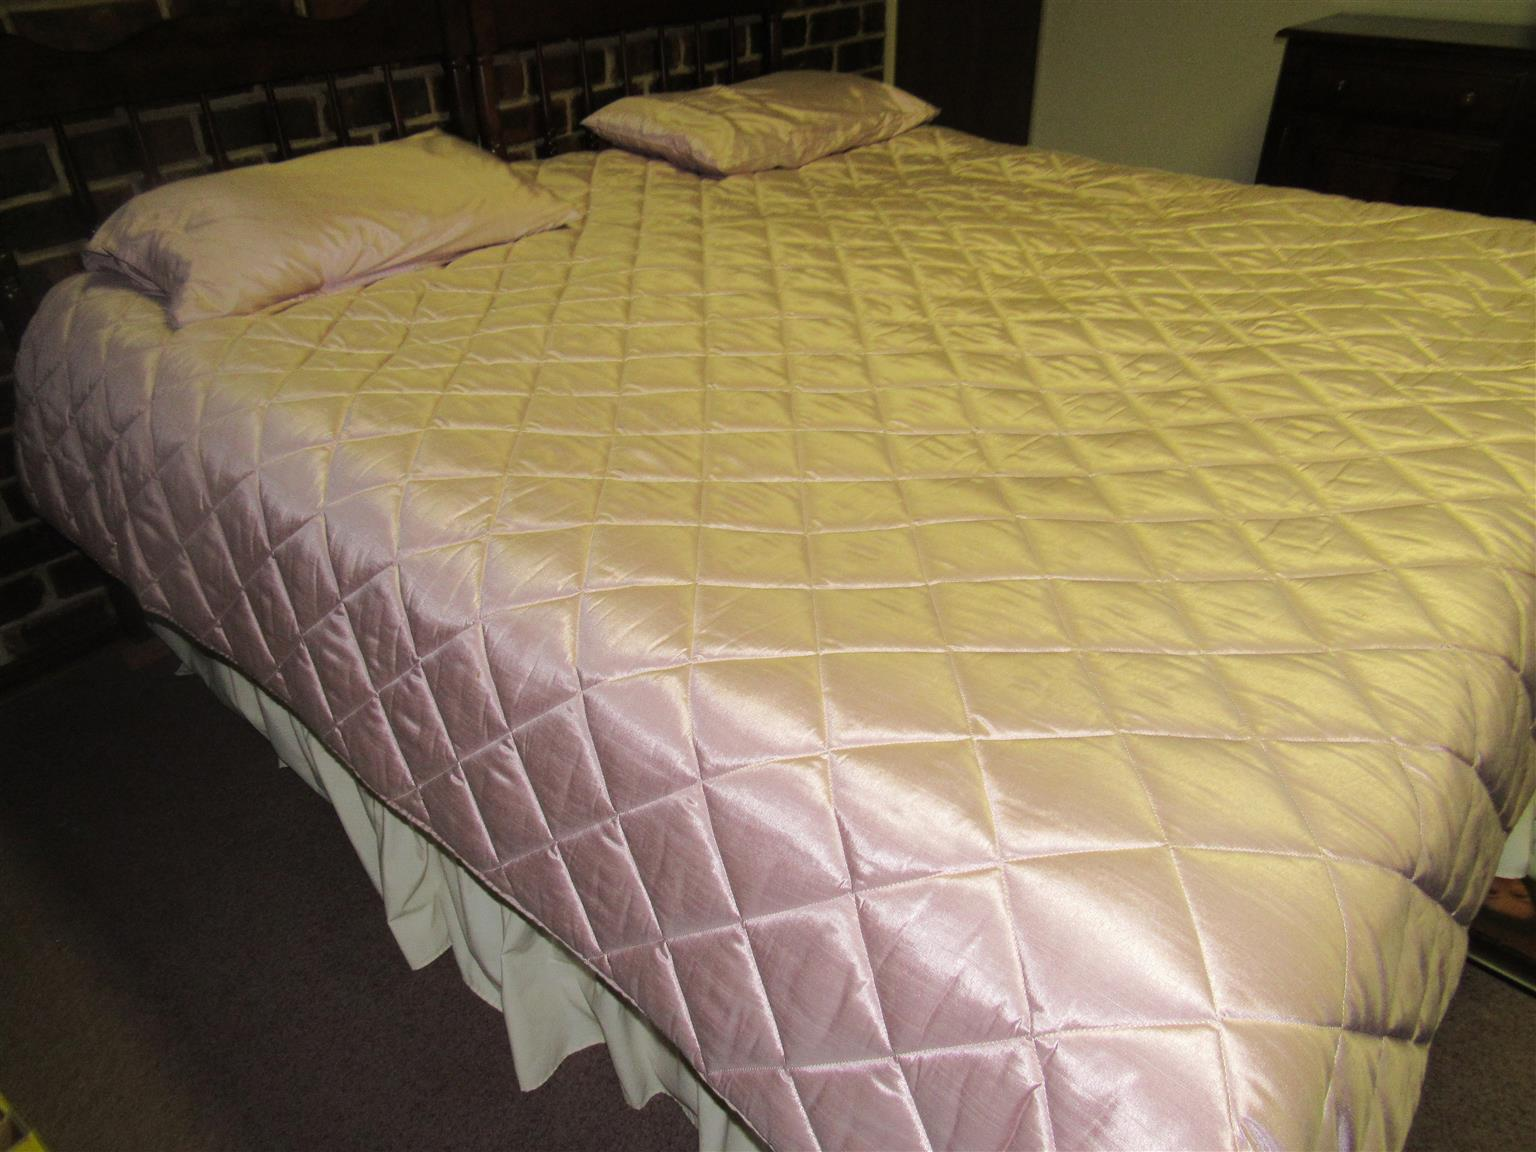 King size Bed with solid Arizone mattress.